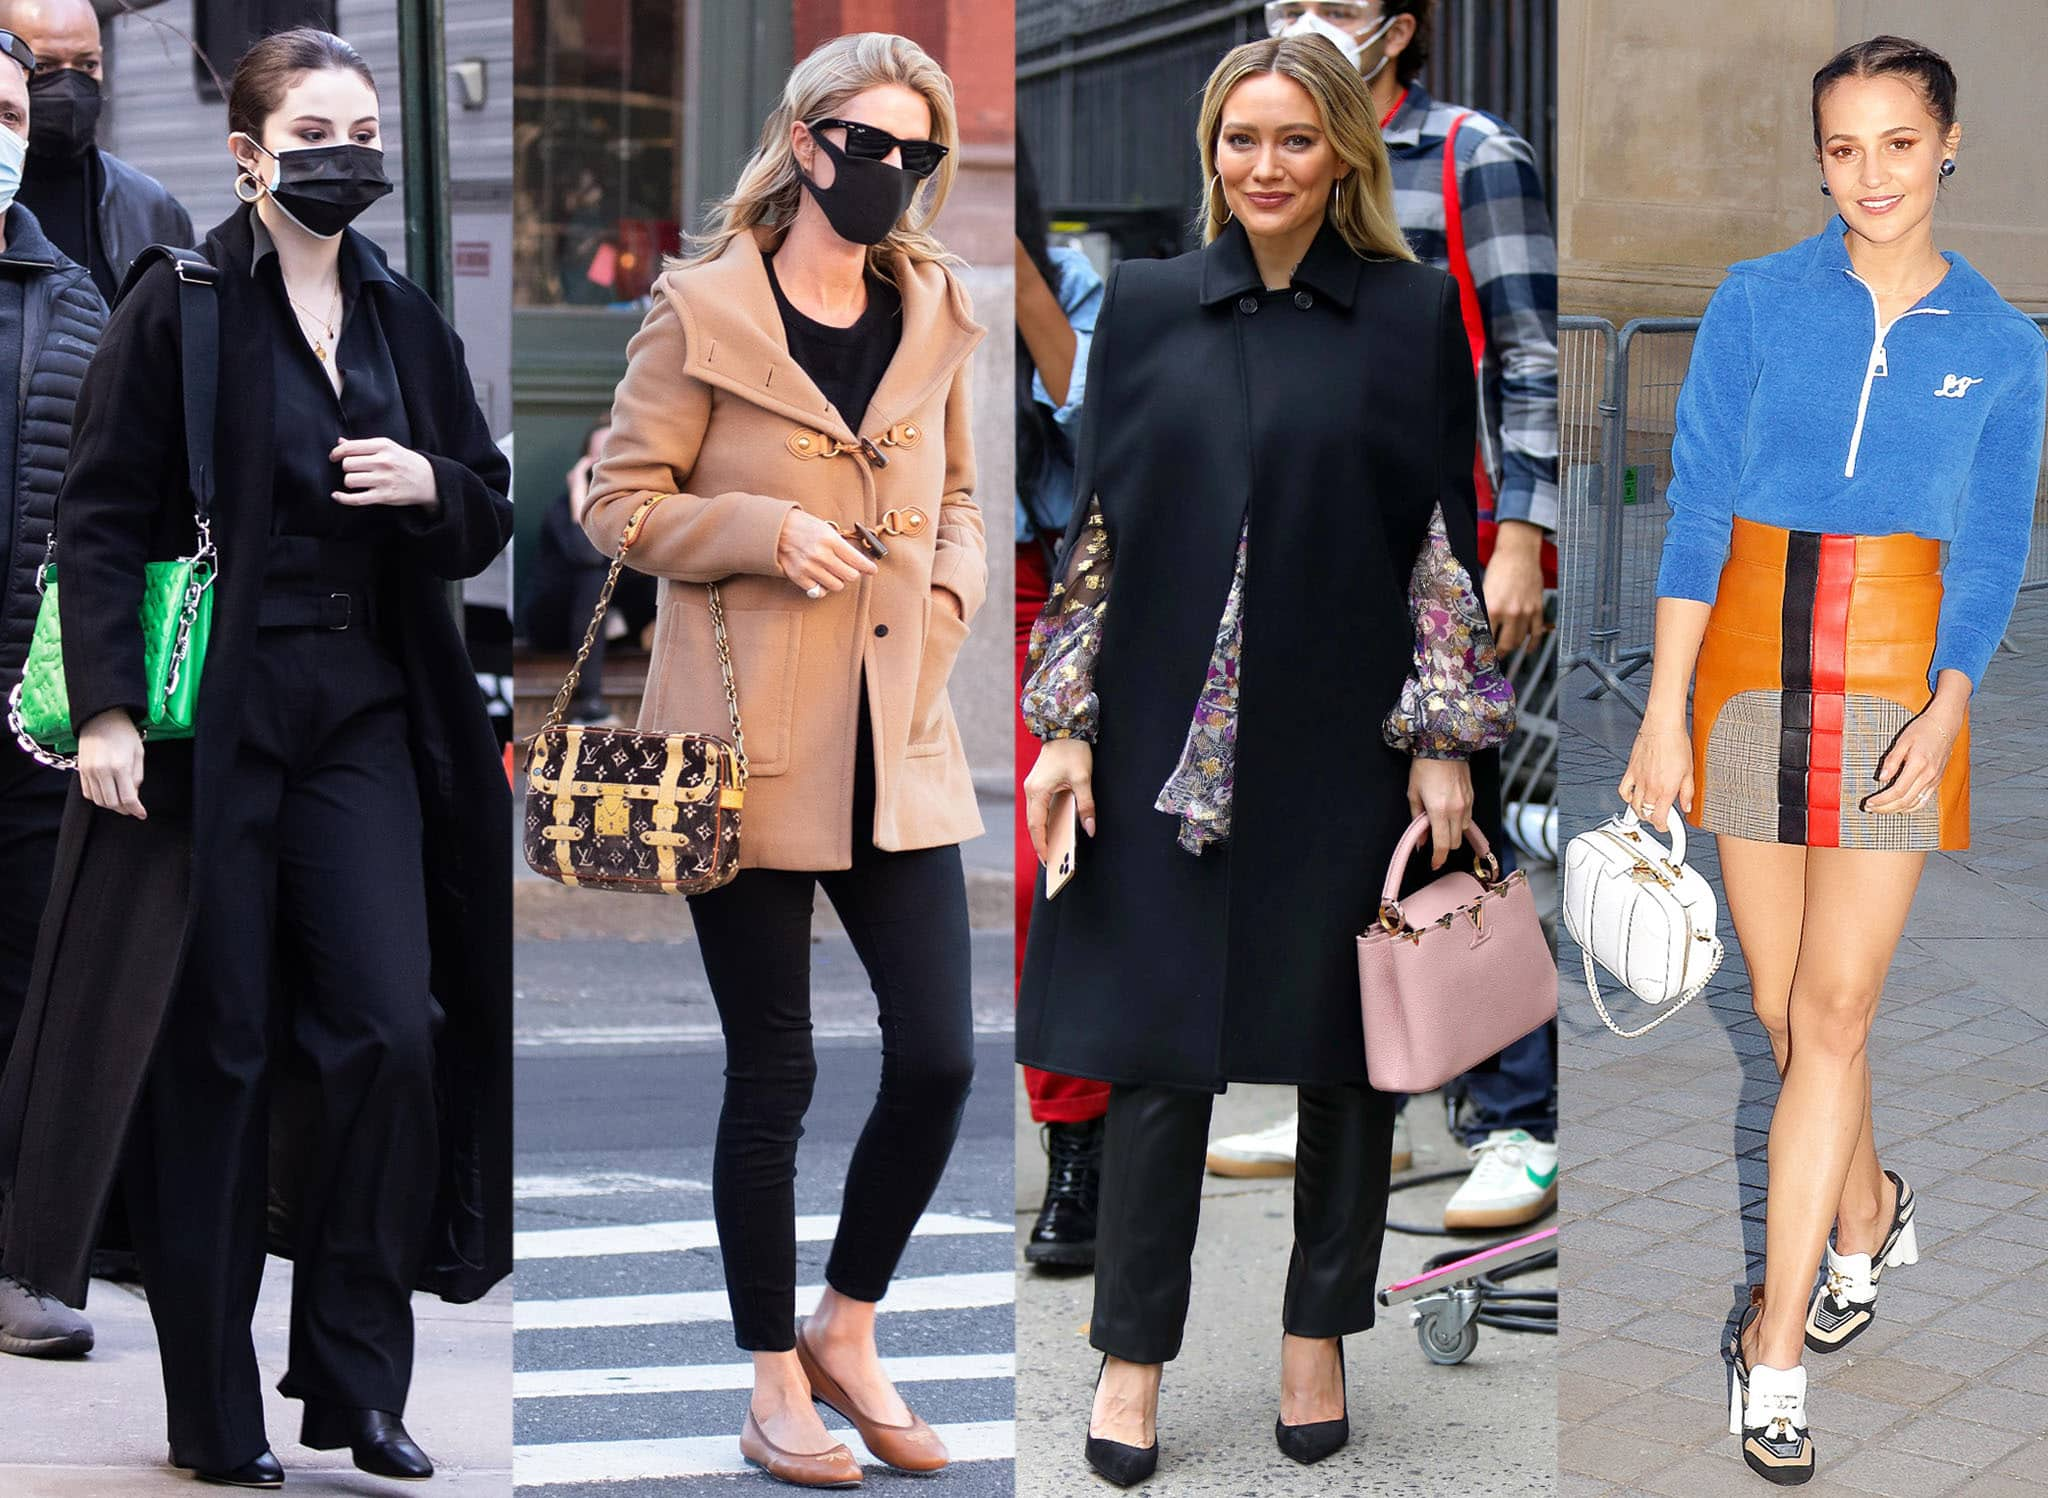 Selena Gomez, Nicky Hilton, Hilary Duff, and Alicia Vikander carrying Louis Vuitton bags